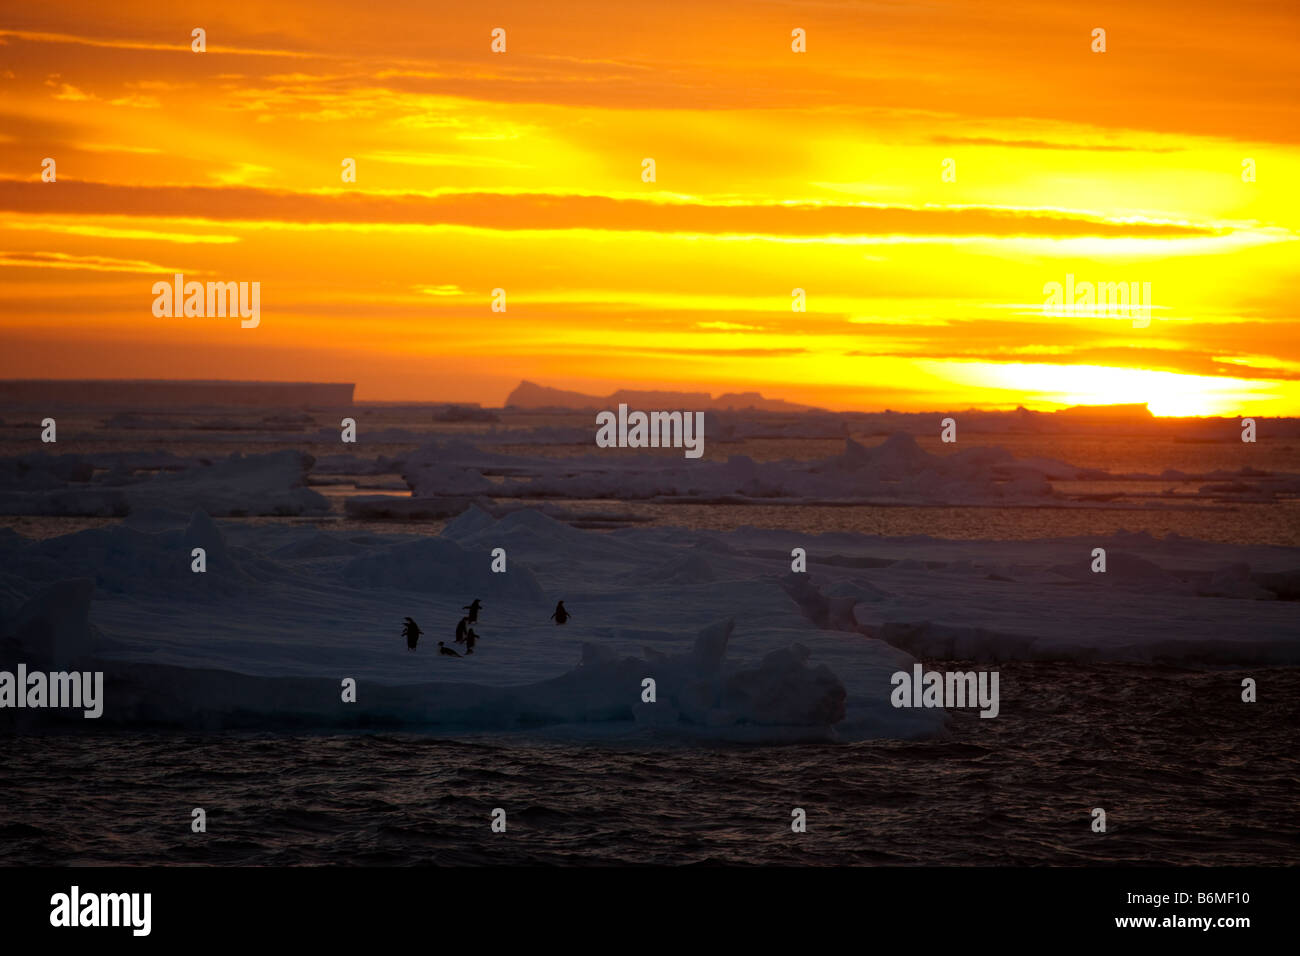 Bright Orange sky sunset overshadowing foreground icebergs, floating ice sheets with Adelie Penguins on Ice in Antarctica. Stock Photo